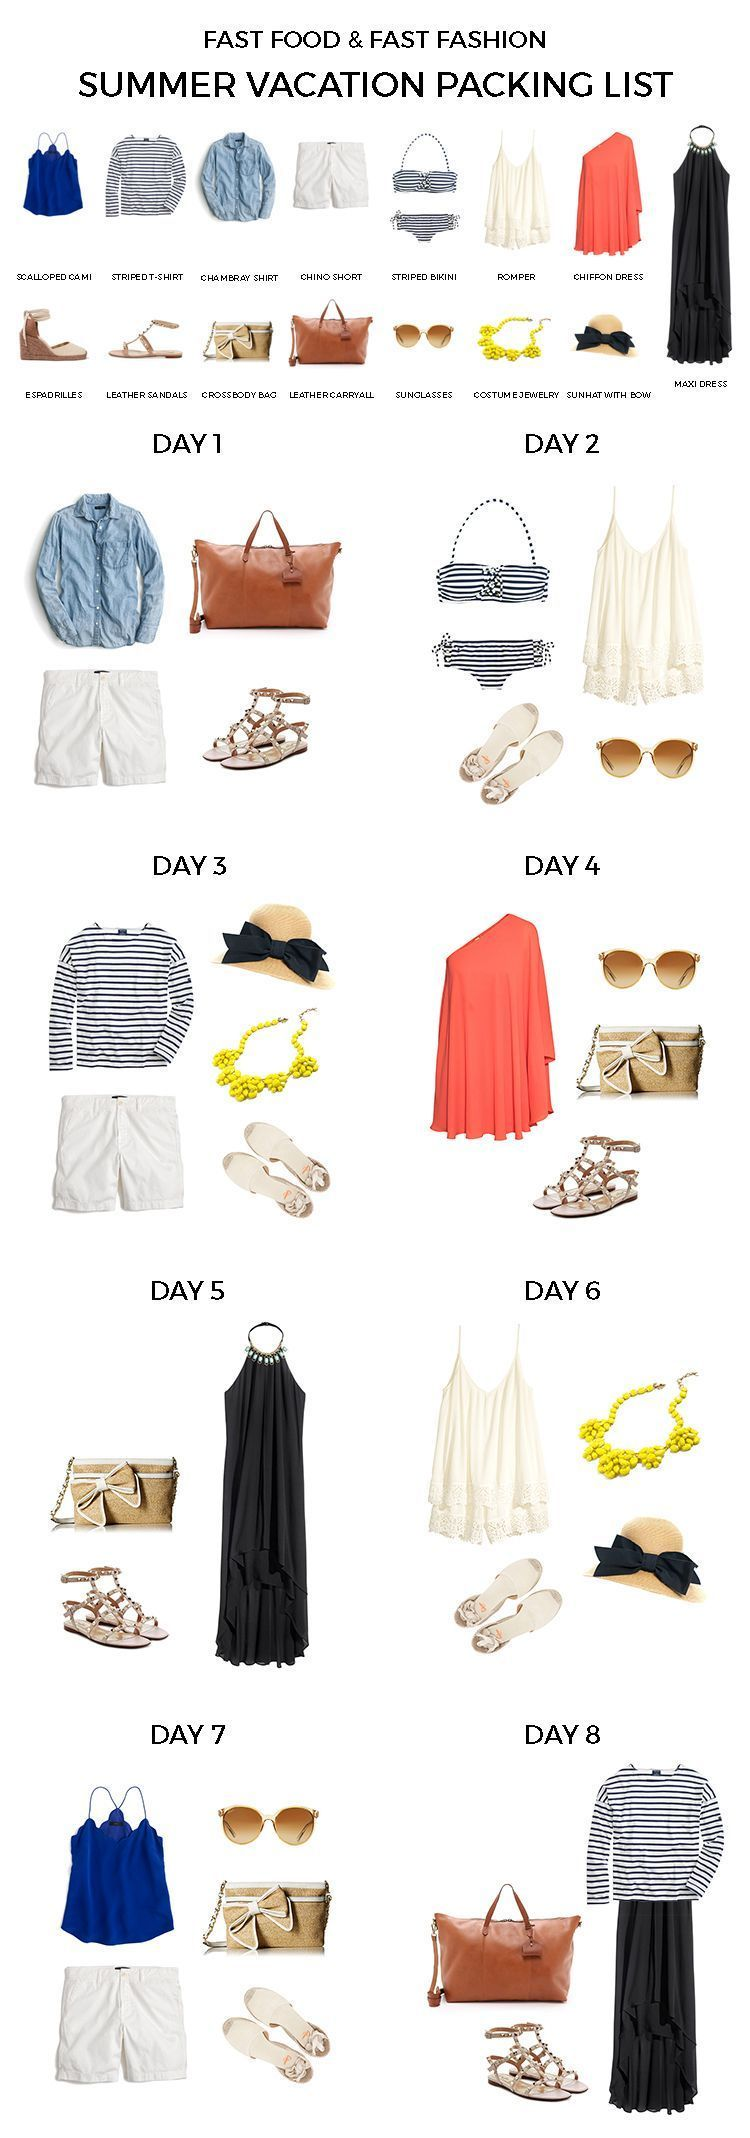 Summer vacation packing list | spain holiday | ropa para viaje #travelwardrobesummer Summer vacation packing list travel clothes summer, travel wardrobe summer, beach wardrobe, travel #travelwardrobesummer